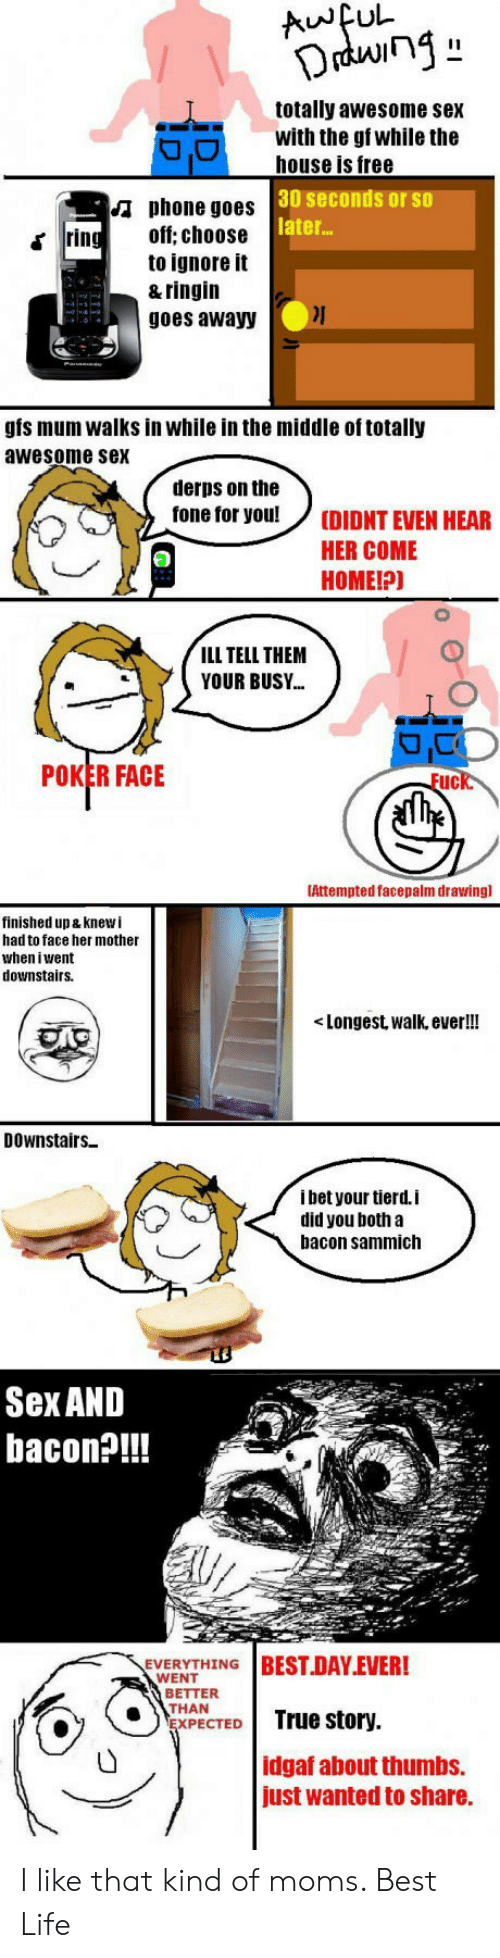 sammich: totally awesome sex  with the gf while the  house is free  30 seconds or so  later...  A phone goes  off; choose  to ignore it  & ringin  goes awayy  rin  gis mum walks in while in the middle of totally  awesome sex  derps on the  fone tor you!(DIDNT EVEN HEAR  HER COME  HOMEIP)  ILL TELL THEM  YOUR BUSY..  POKER FACE  Fuck.  Attempted facepalm drawing]  finished up & knewi  had to face her mother  when iwent  downstairsS.  <Longest, walk, ever!!  DOwnstairs  i bet your tierd.i  did you both a  bacon sammich  Sex AND  bacon?!!!  THING I BEST-DAY-EVER!  ACT True story.  WENT  BETTER  THAN  XPECTED  idgaf about thumbs.  just wanted to share. I like that kind of moms. Best Life